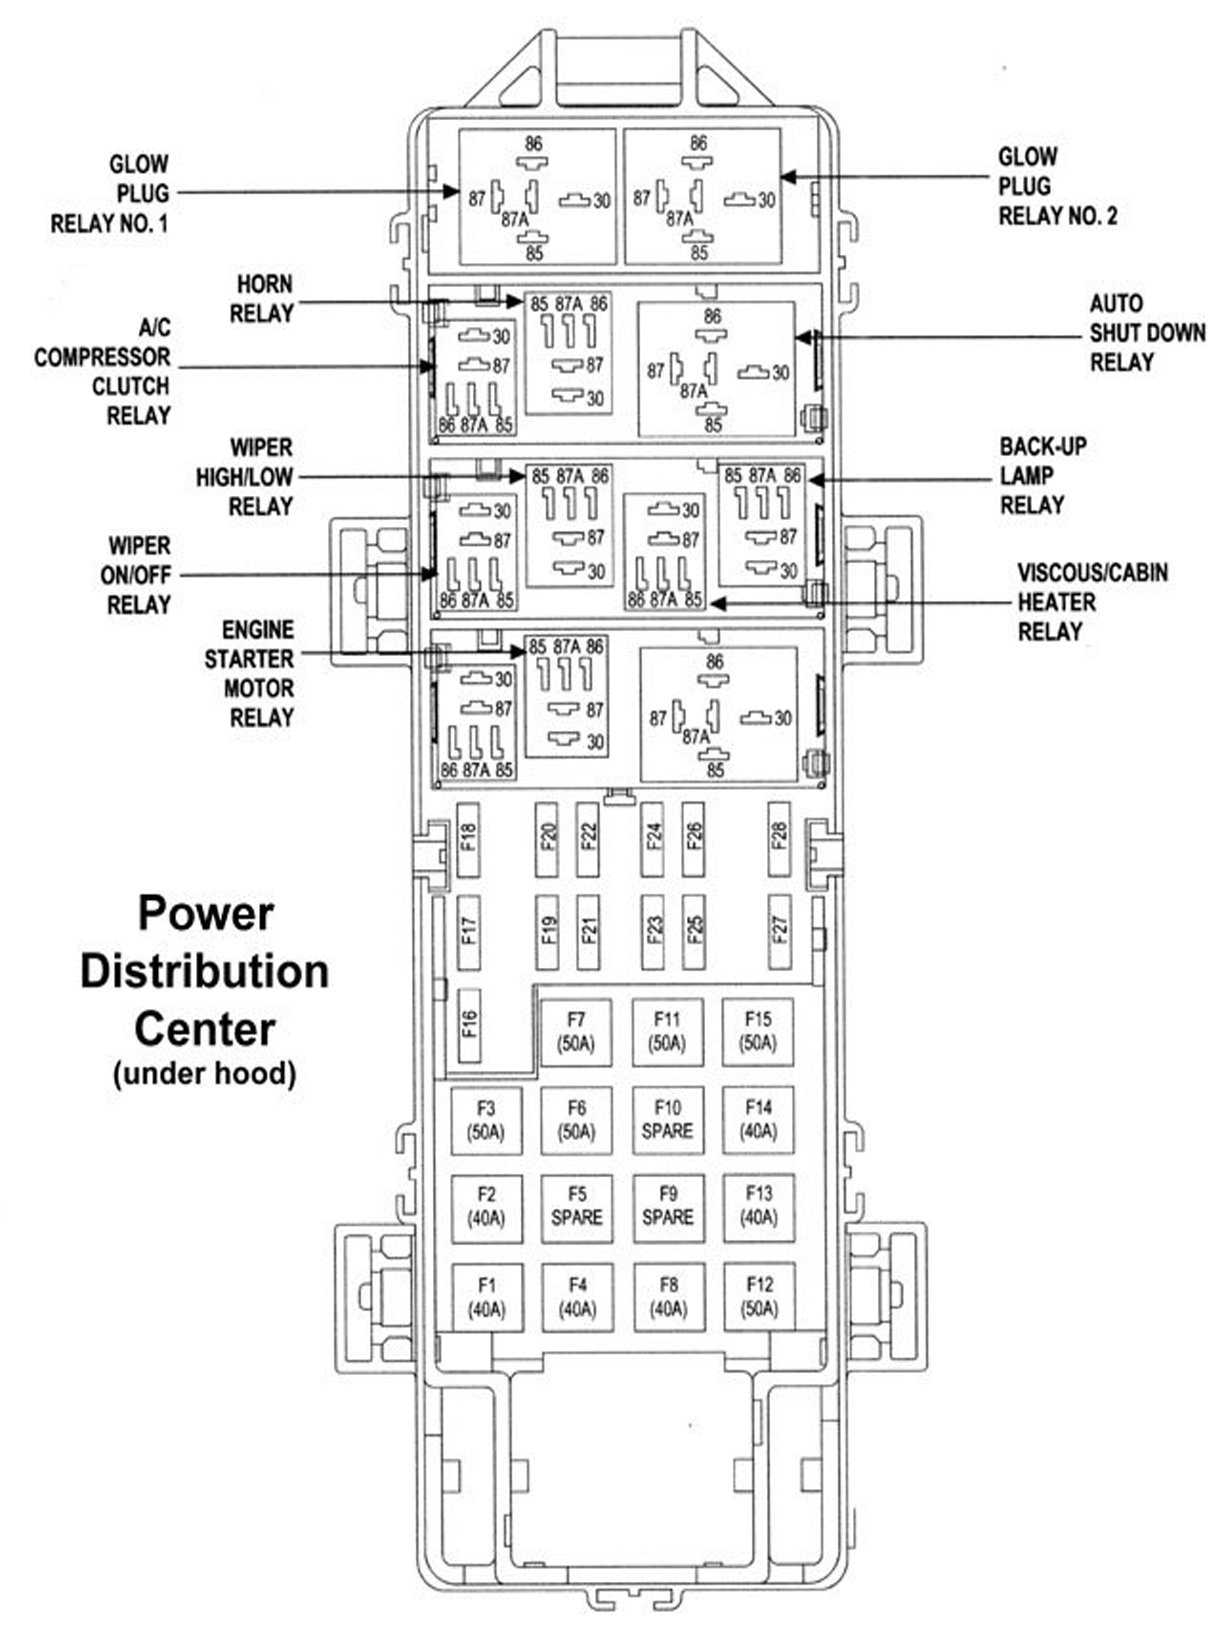 1999 Toyota Avalon Fuse Box Diagram Portrait additionally Dodge Grand Caravan Interior Dimensions besides Jeep Grand Cherokee 1999 2004 Fuse Box Diagram 397760 moreover Dodge Durango 4 7 2005 Specs And Images furthermore 1989 Toyota 4runner Fuel Pump Wiring Diagram Location. on dodge grand caravan electrical diagram